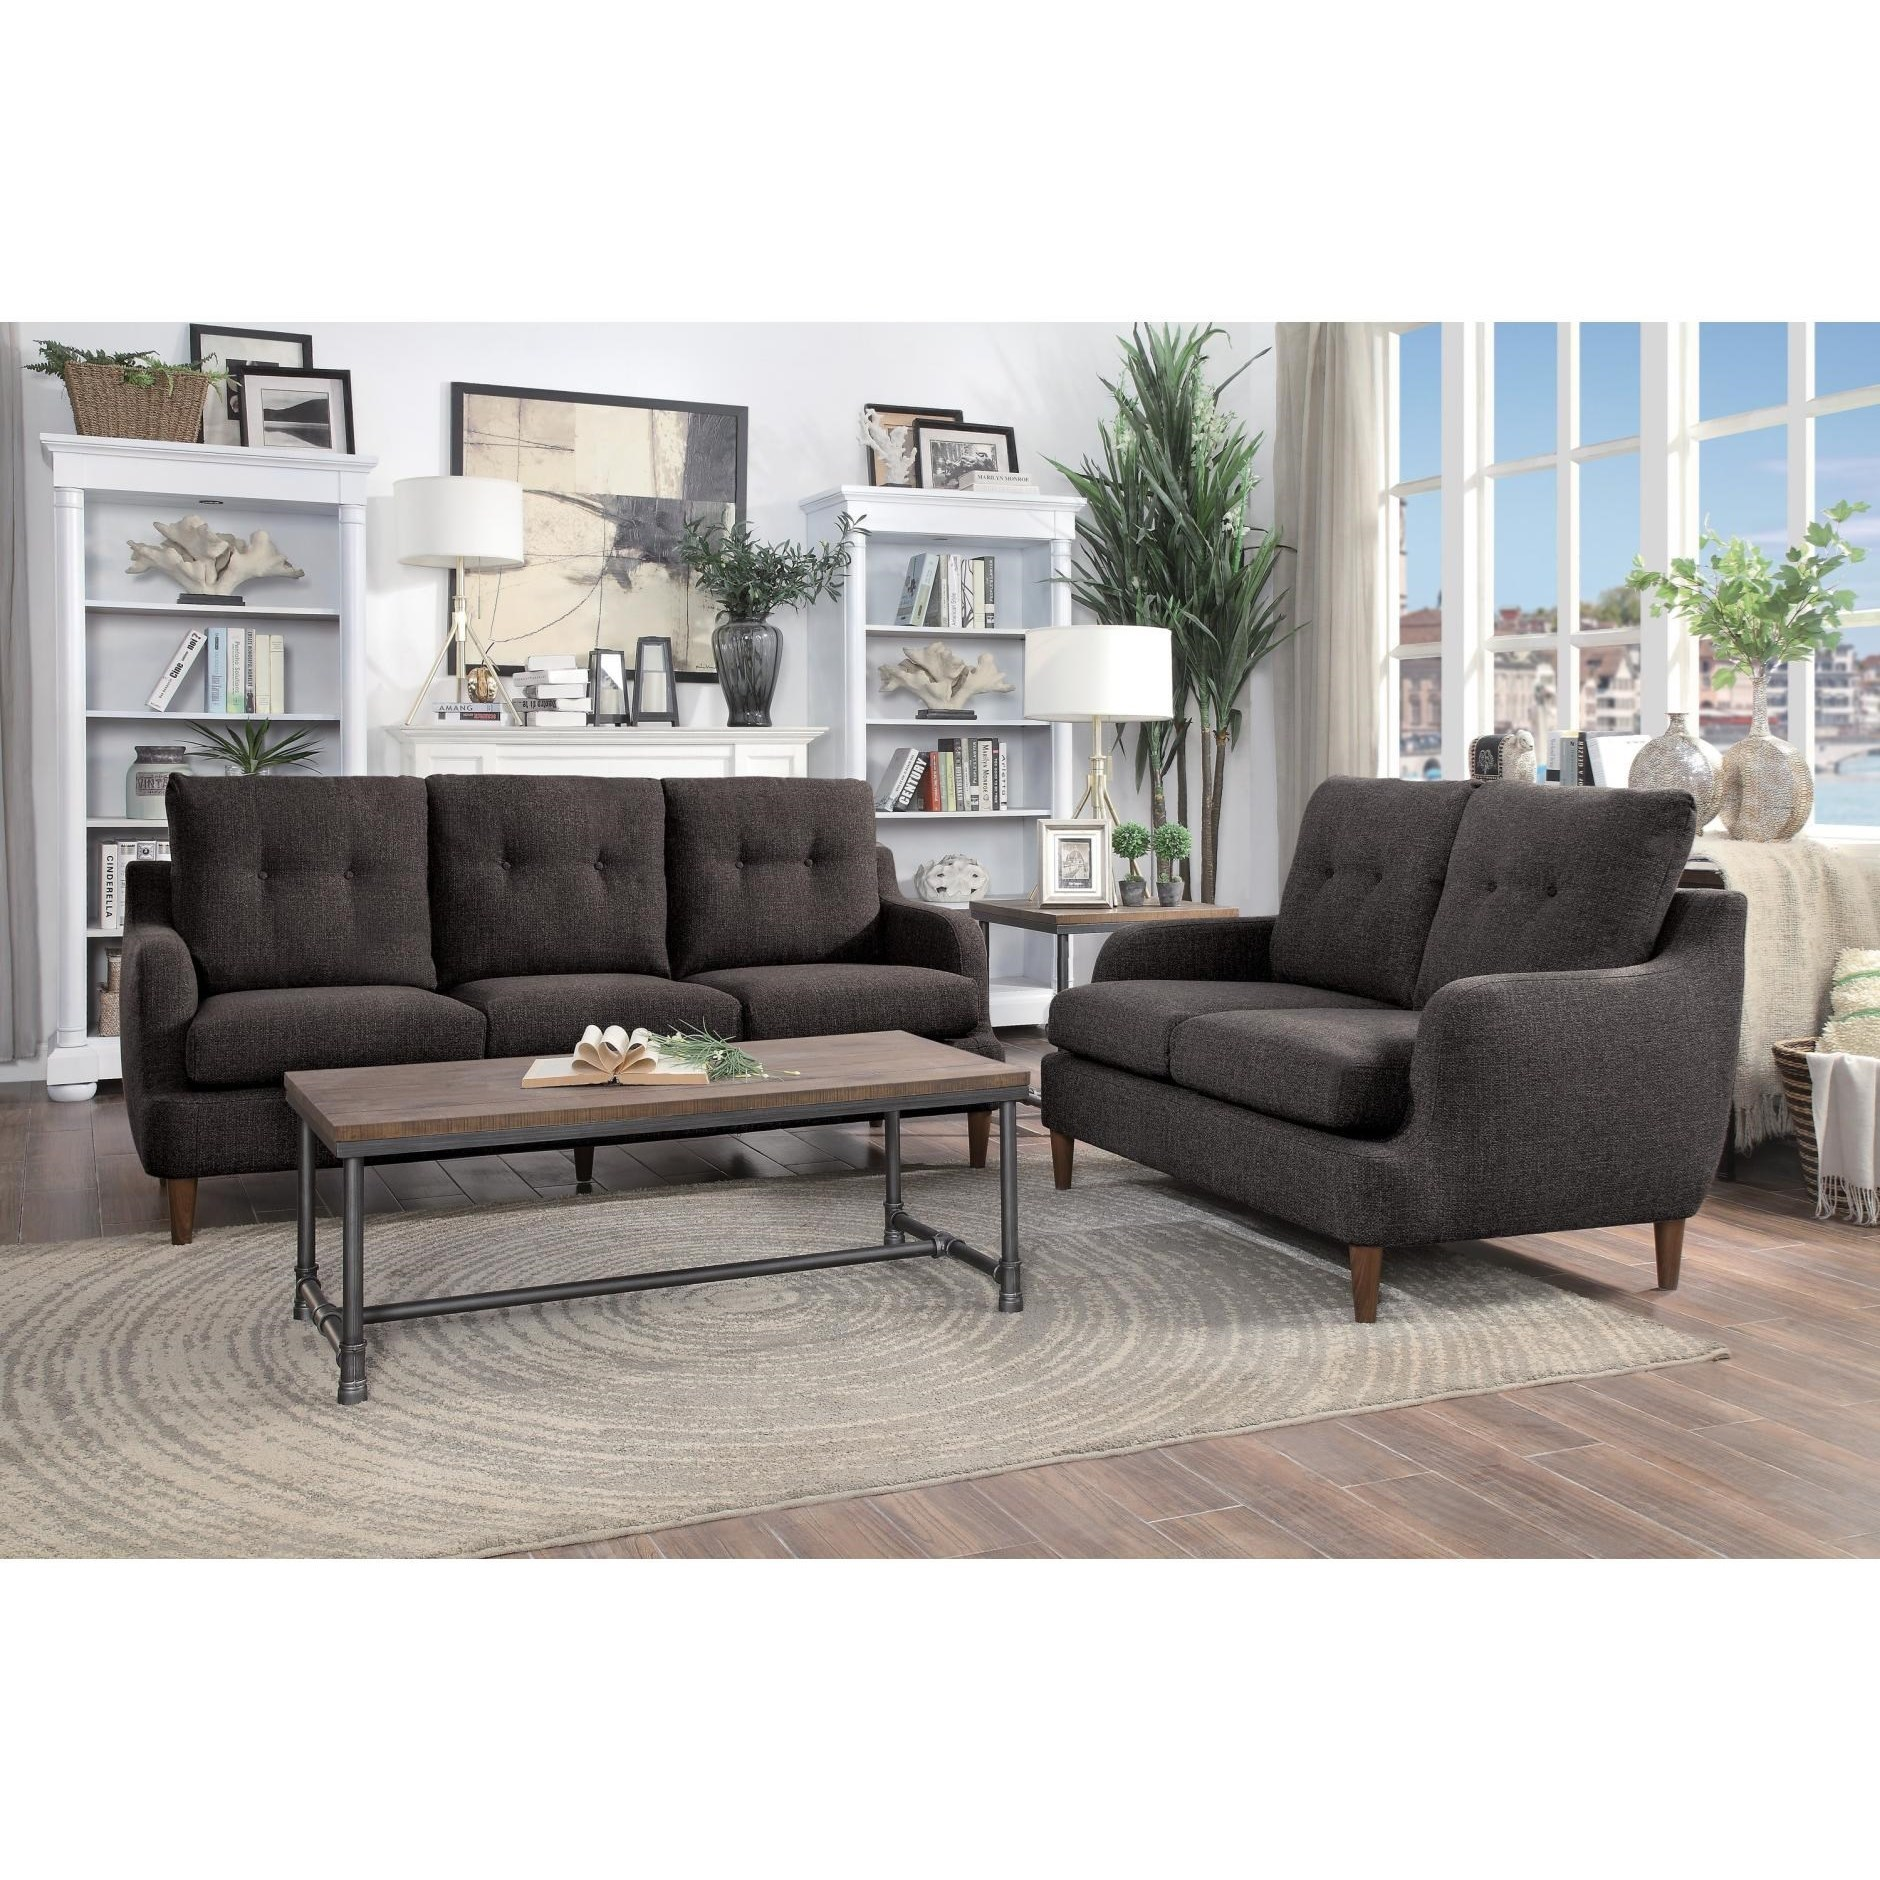 Cagle Stationary Living Room Group by Homelegance at Lindy's Furniture Company